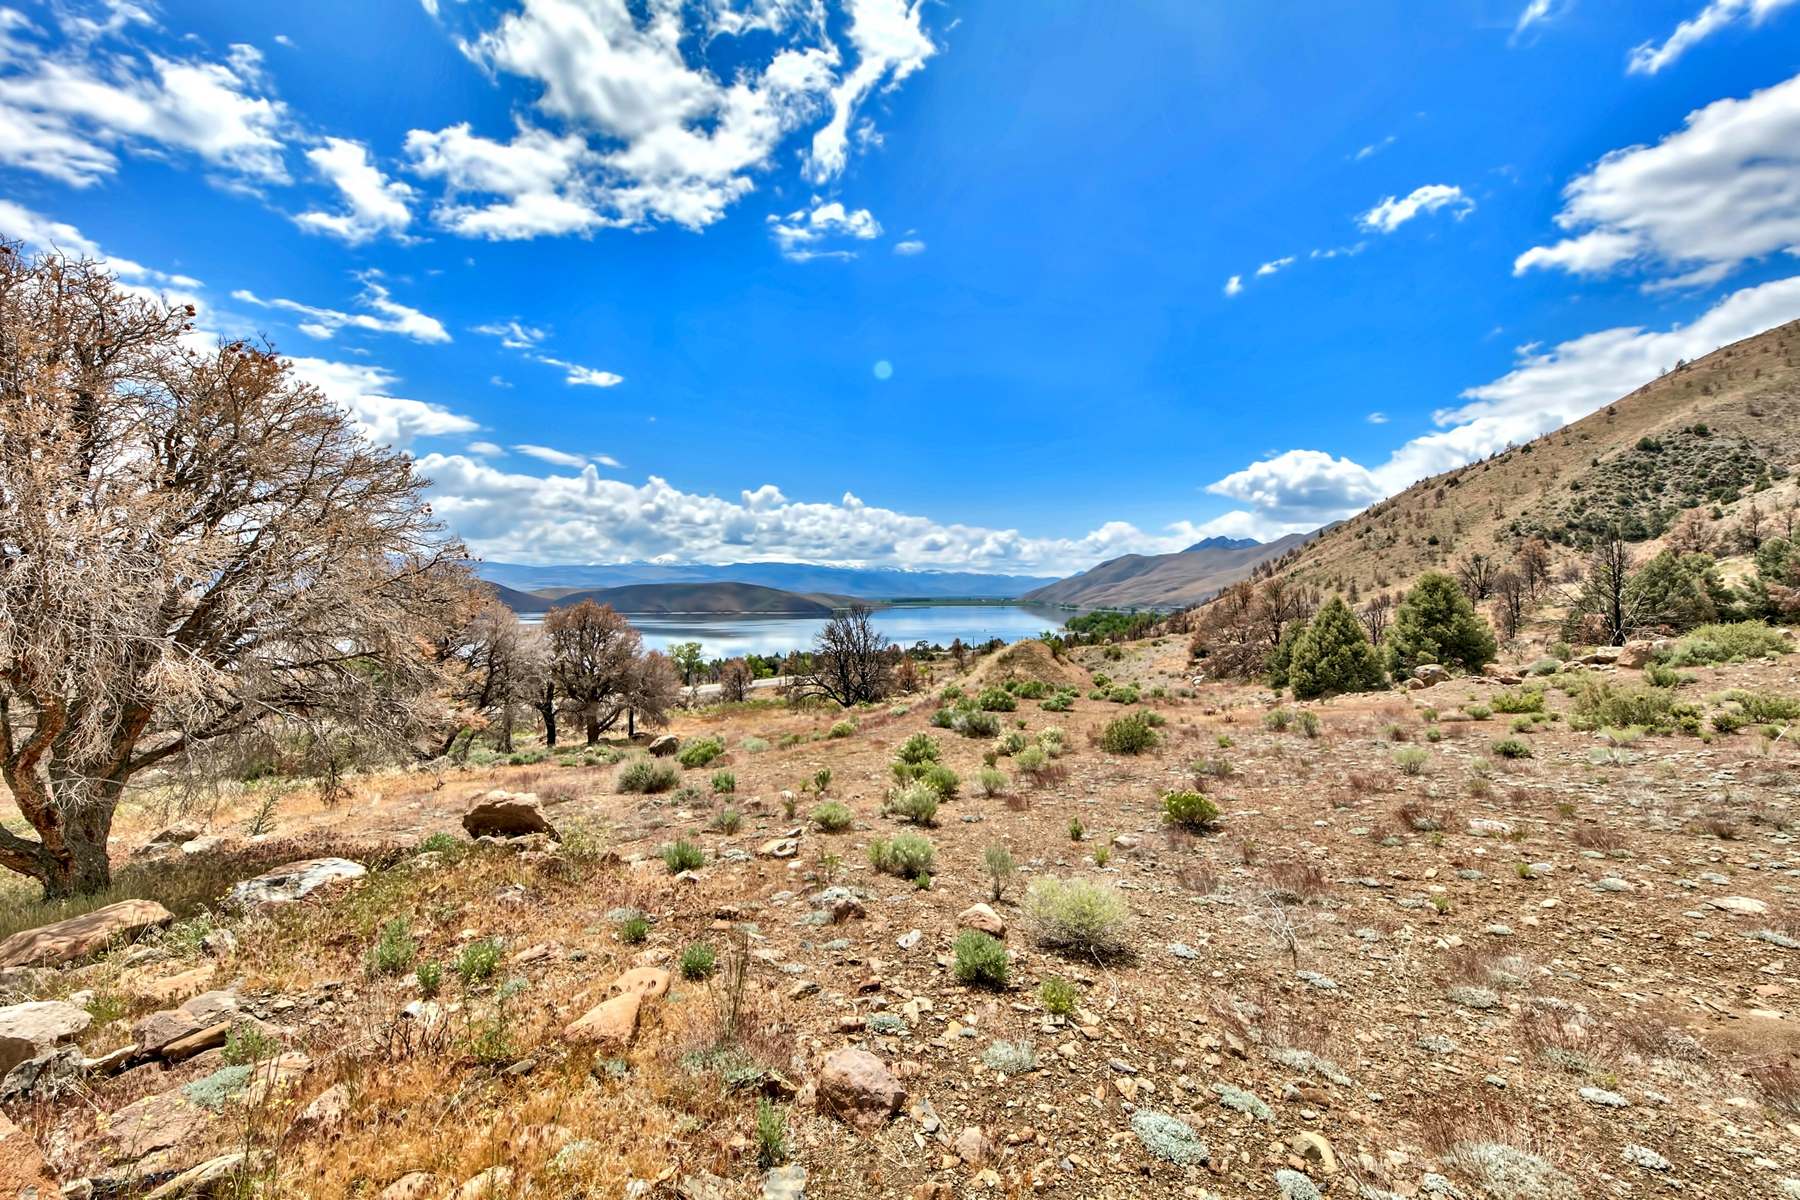 Additional photo for property listing at 2000 South Highway 395, Gardnerville, NV 89410 2000 S. Highway 395 Gardnerville, Nevada 89410 United States